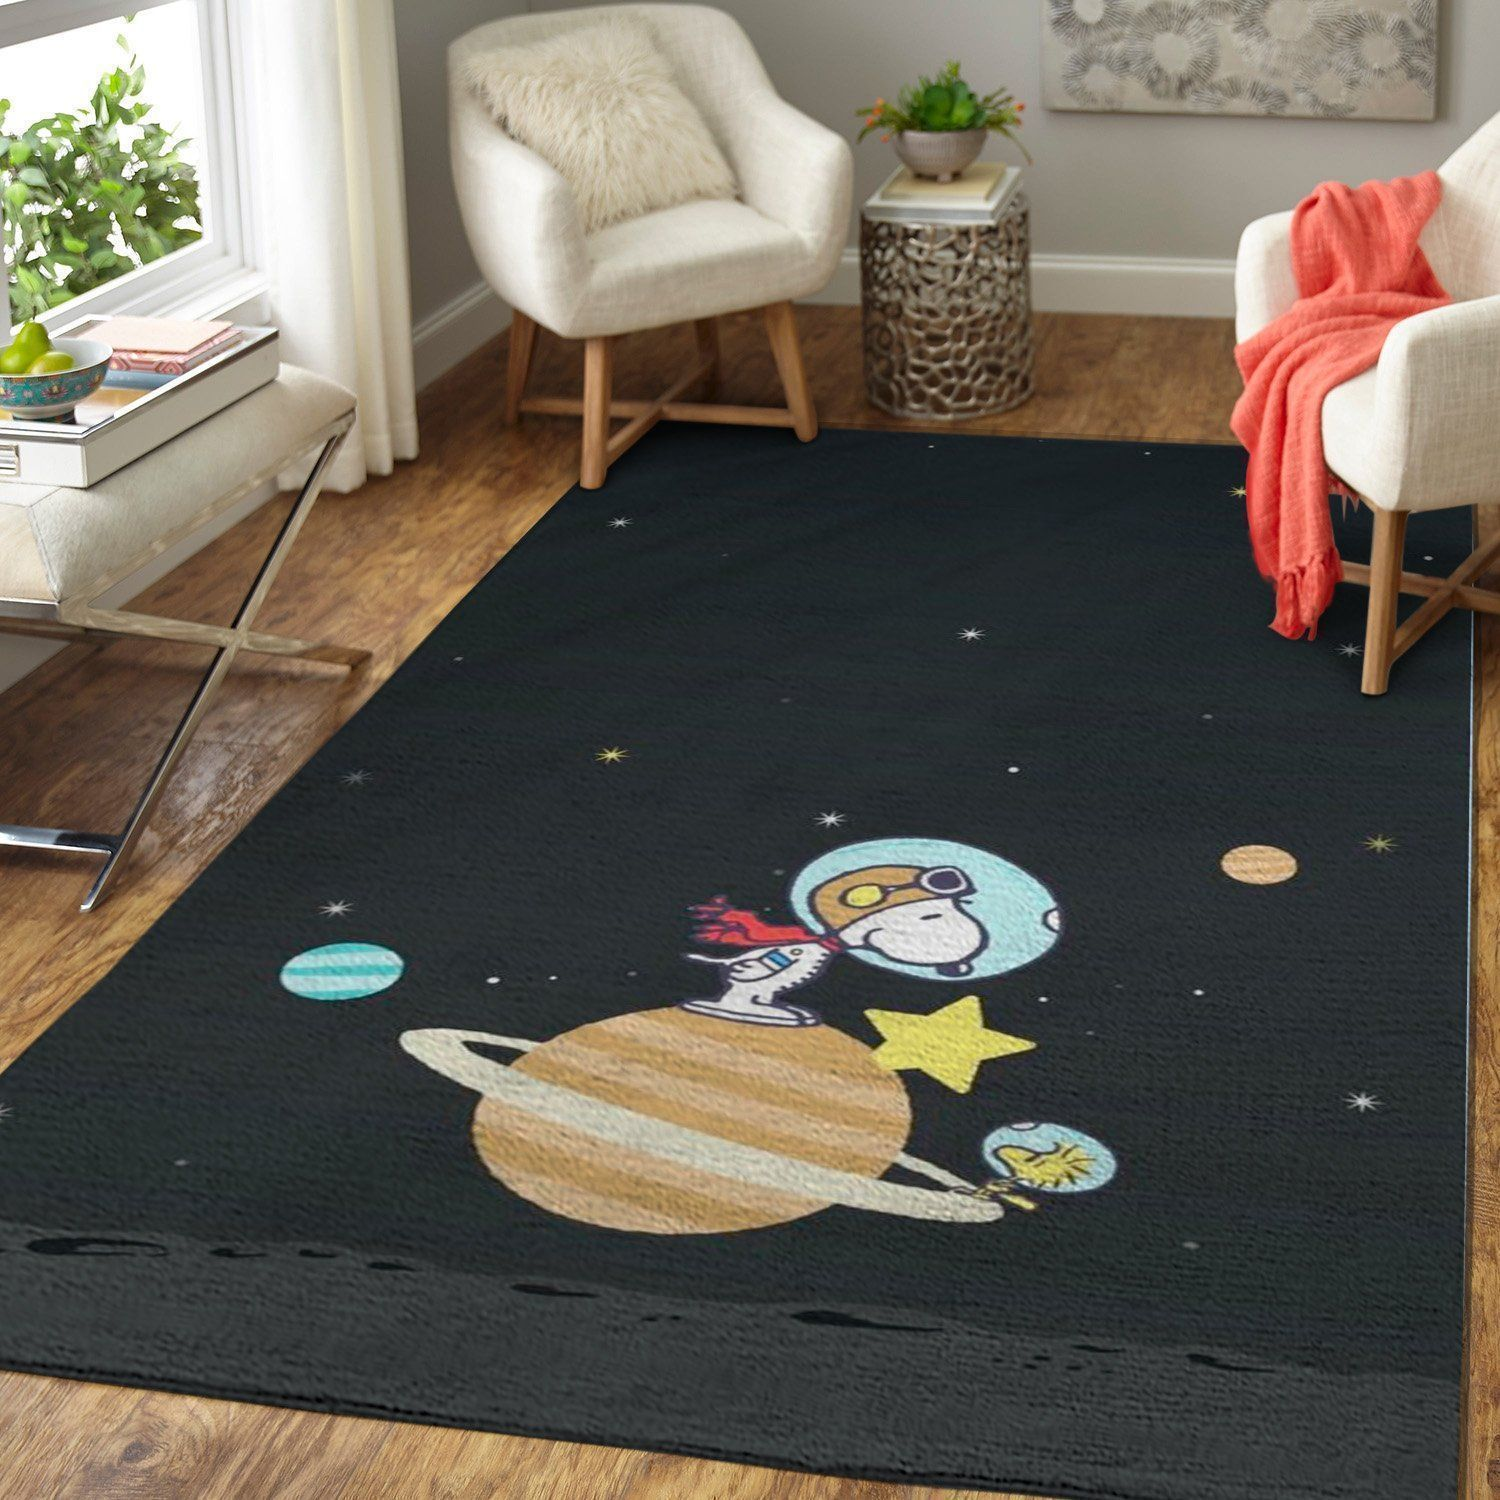 Snoopy Area Rugs / Disney Movie Living Room Carpet, Custom Floor Decor 1910217